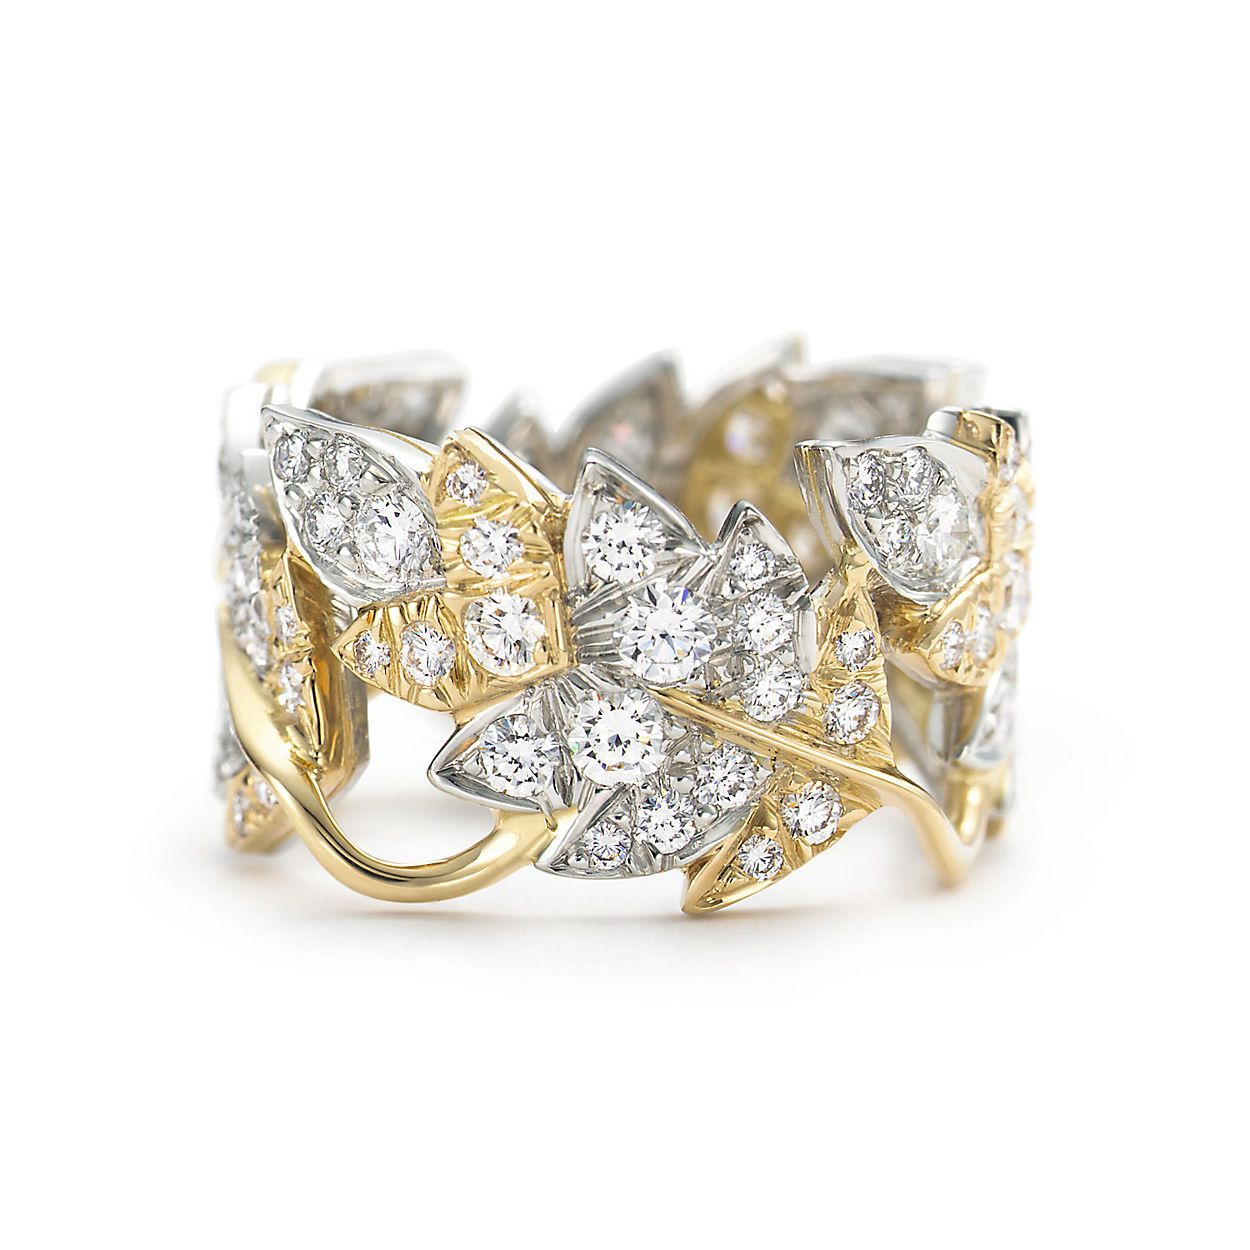 Tiffany & Co. Schlumberger® Four Leaves ring in 18k gold